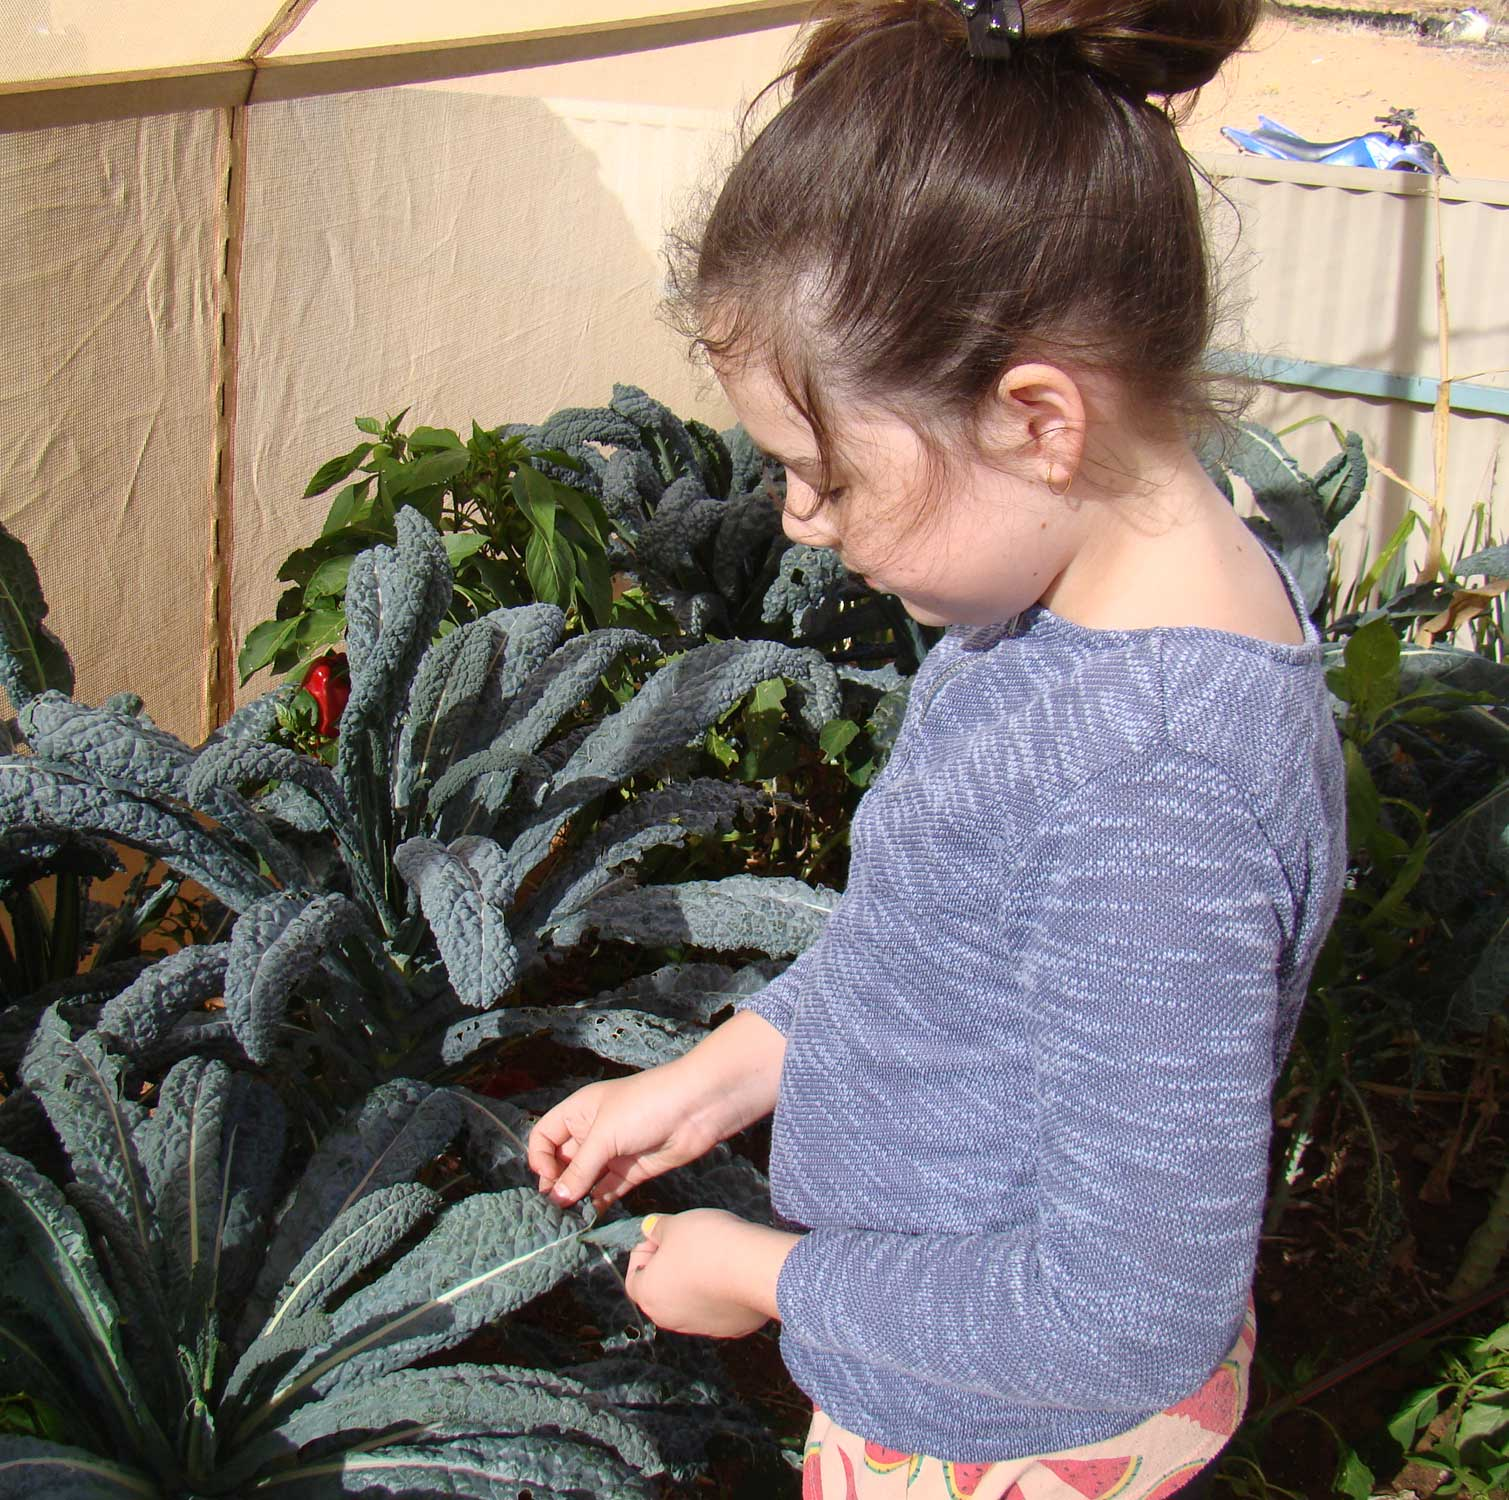 Tookii things to do with kids with kale one of the outdoor activities for kids